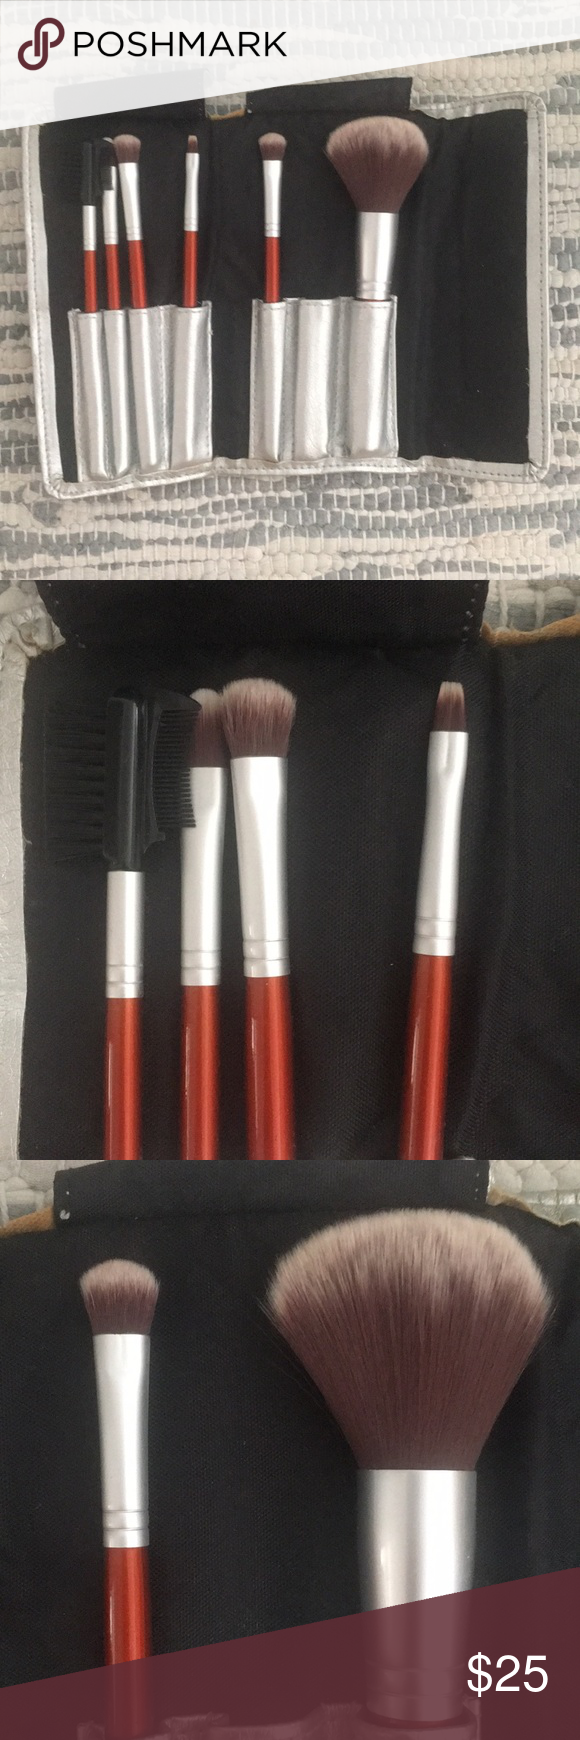 Sephora antibacterial brush set Antibacterial brush set